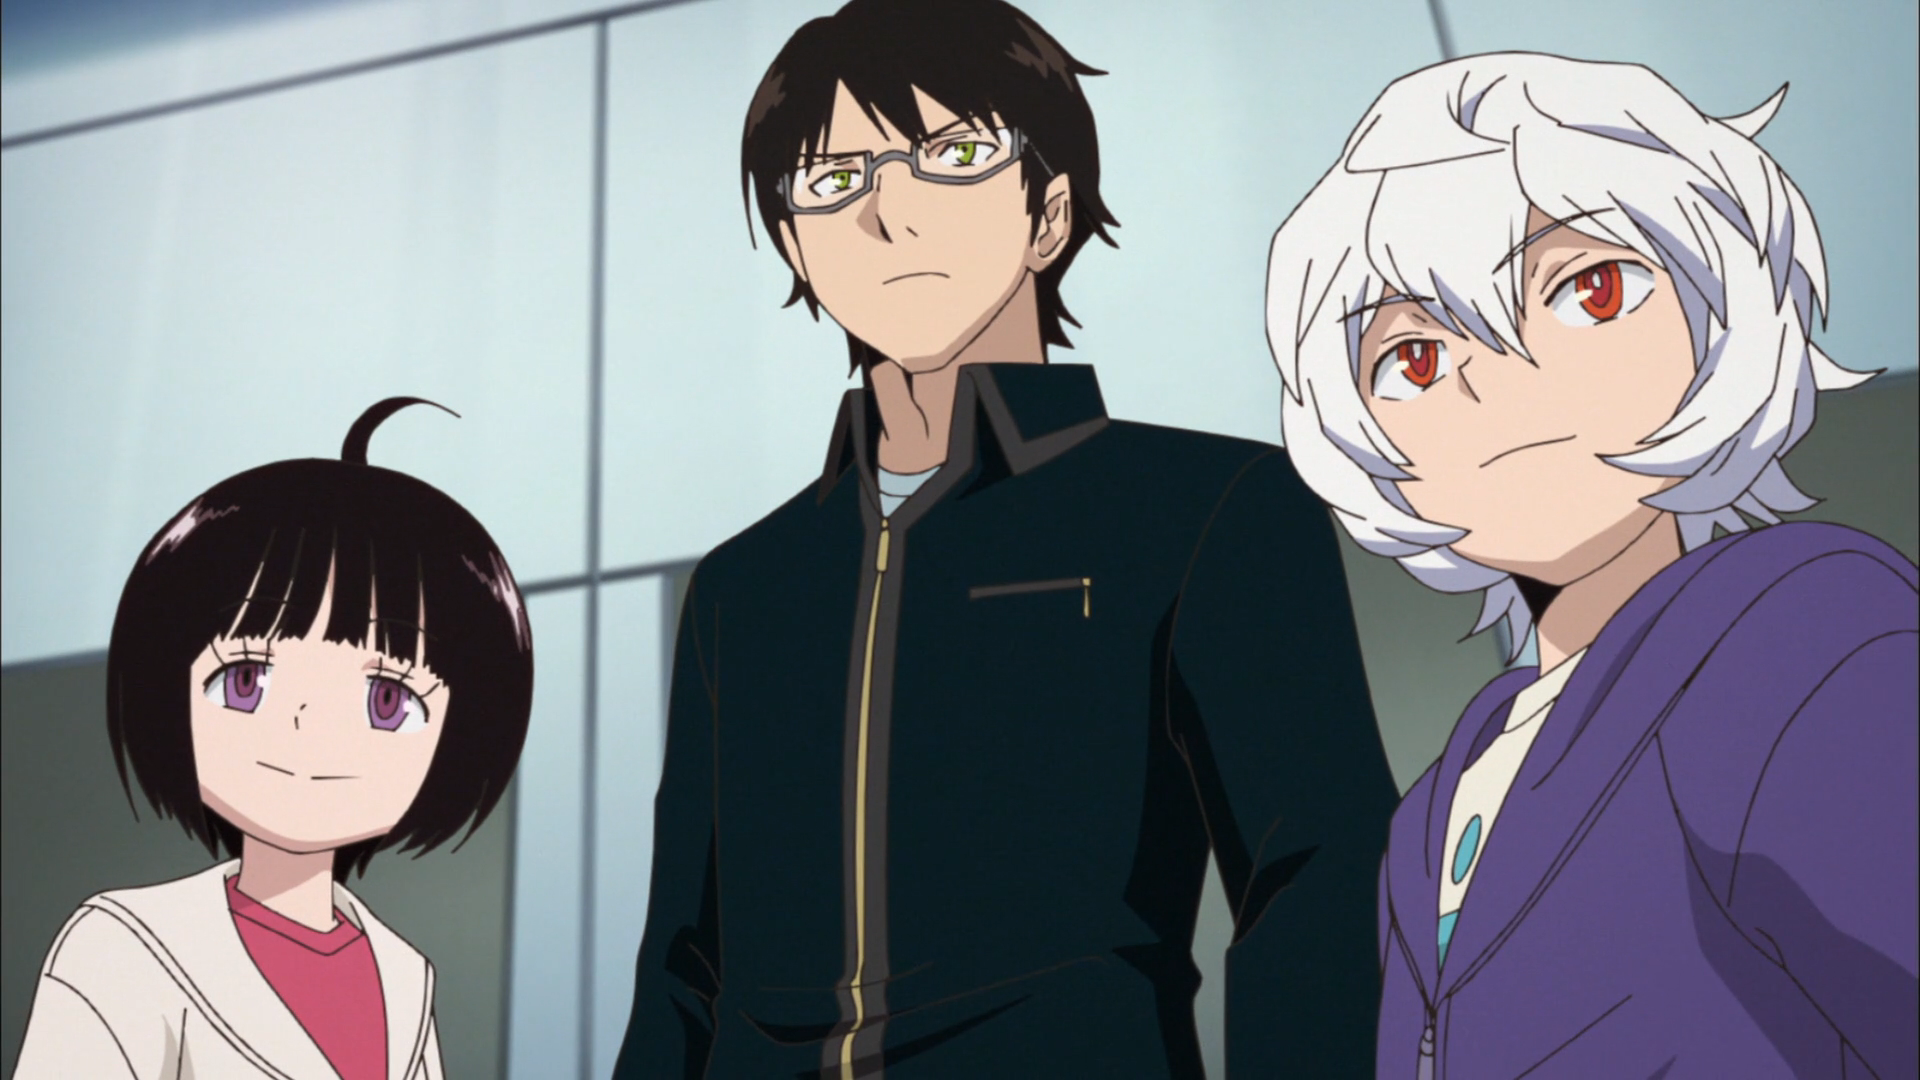 World trigger episode 39 chika osamu and yuma standing together